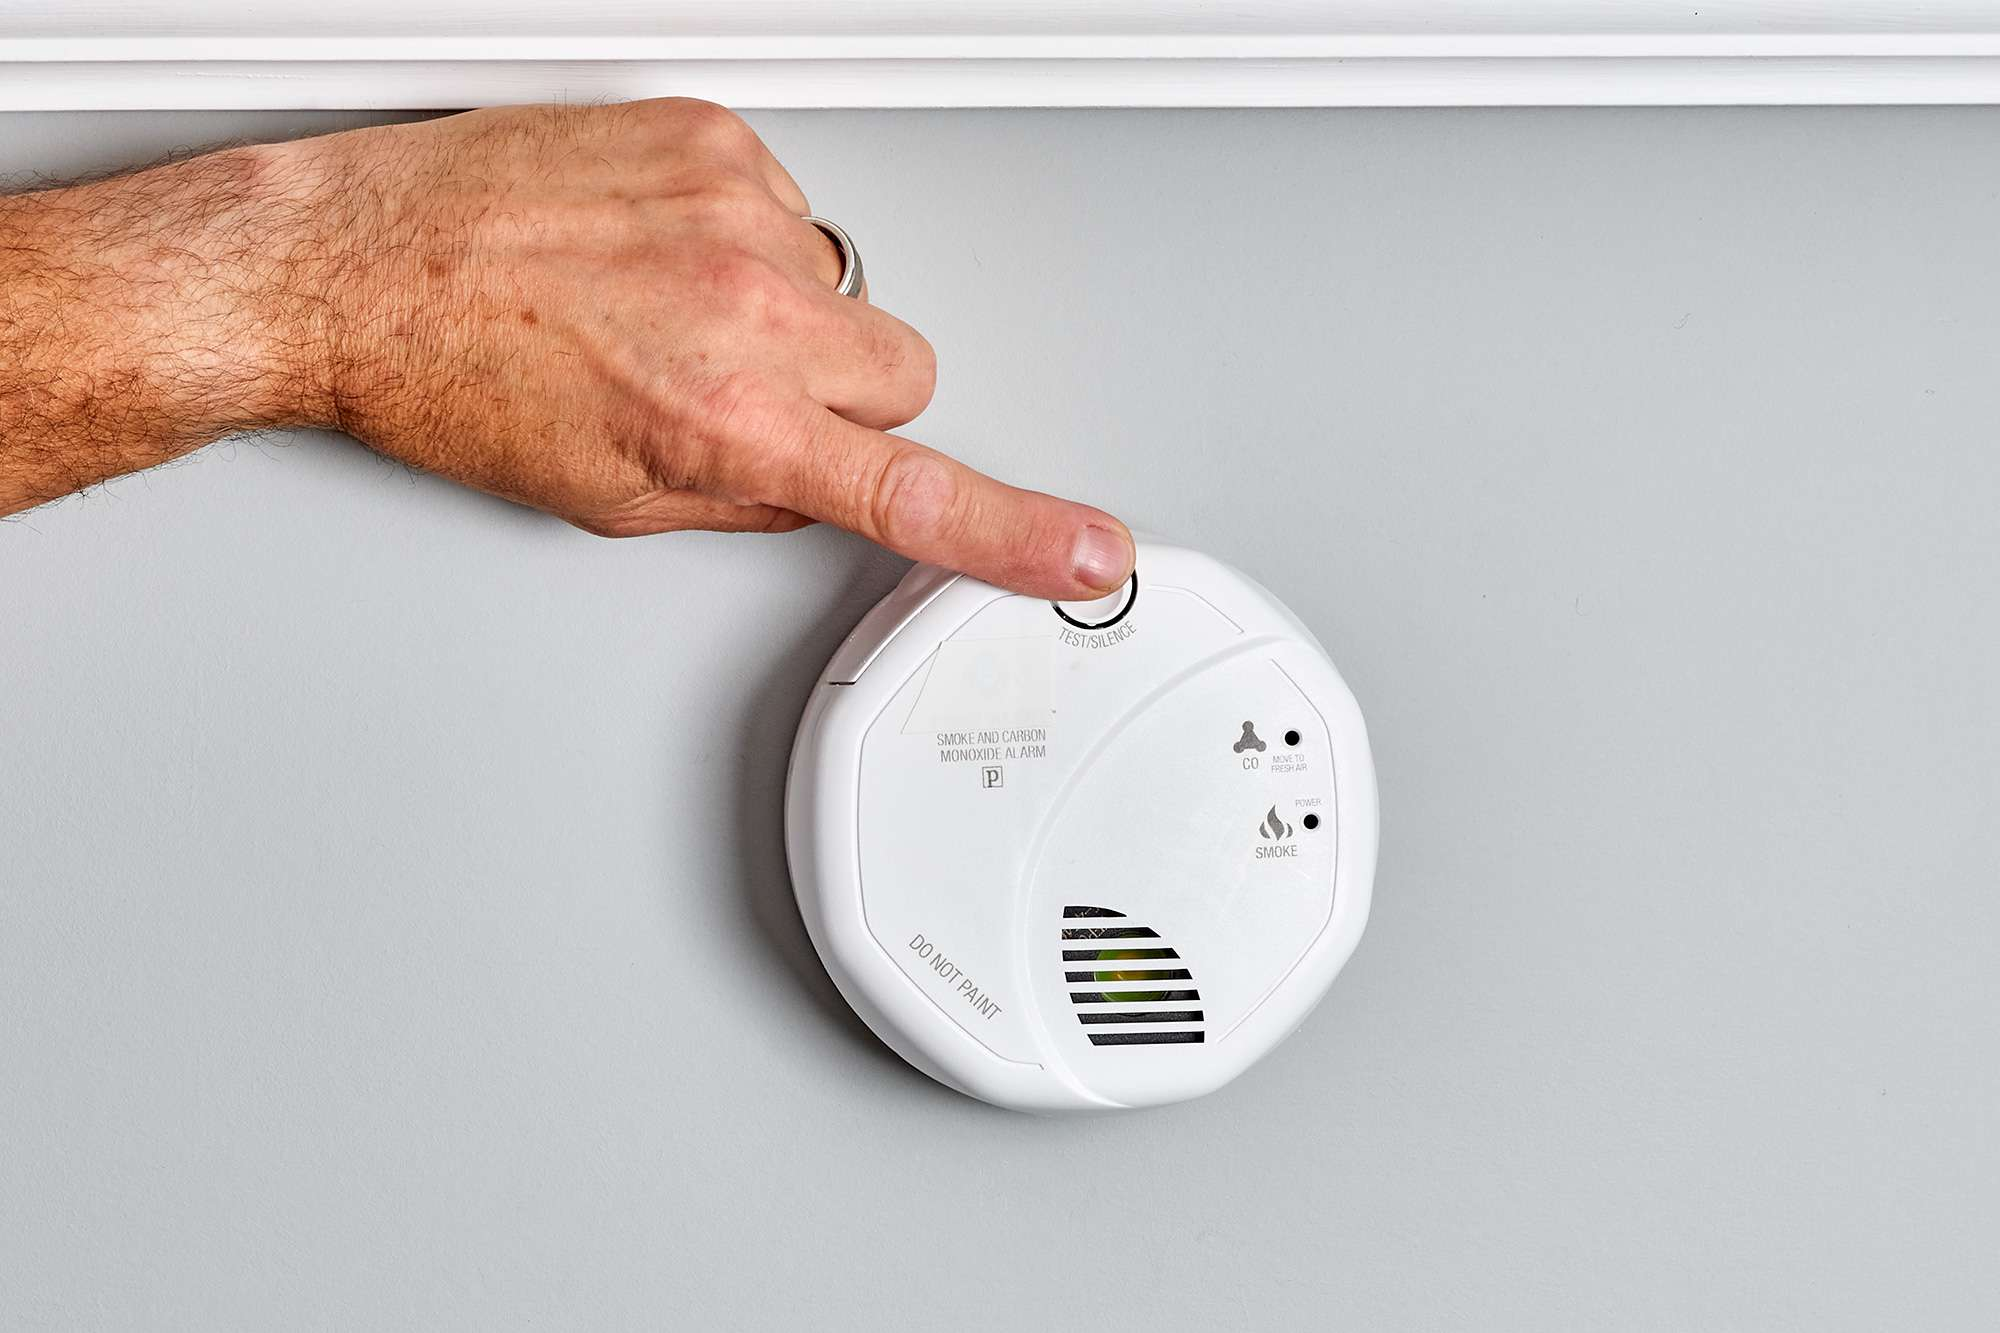 Power button on smoke detector pressed for testing